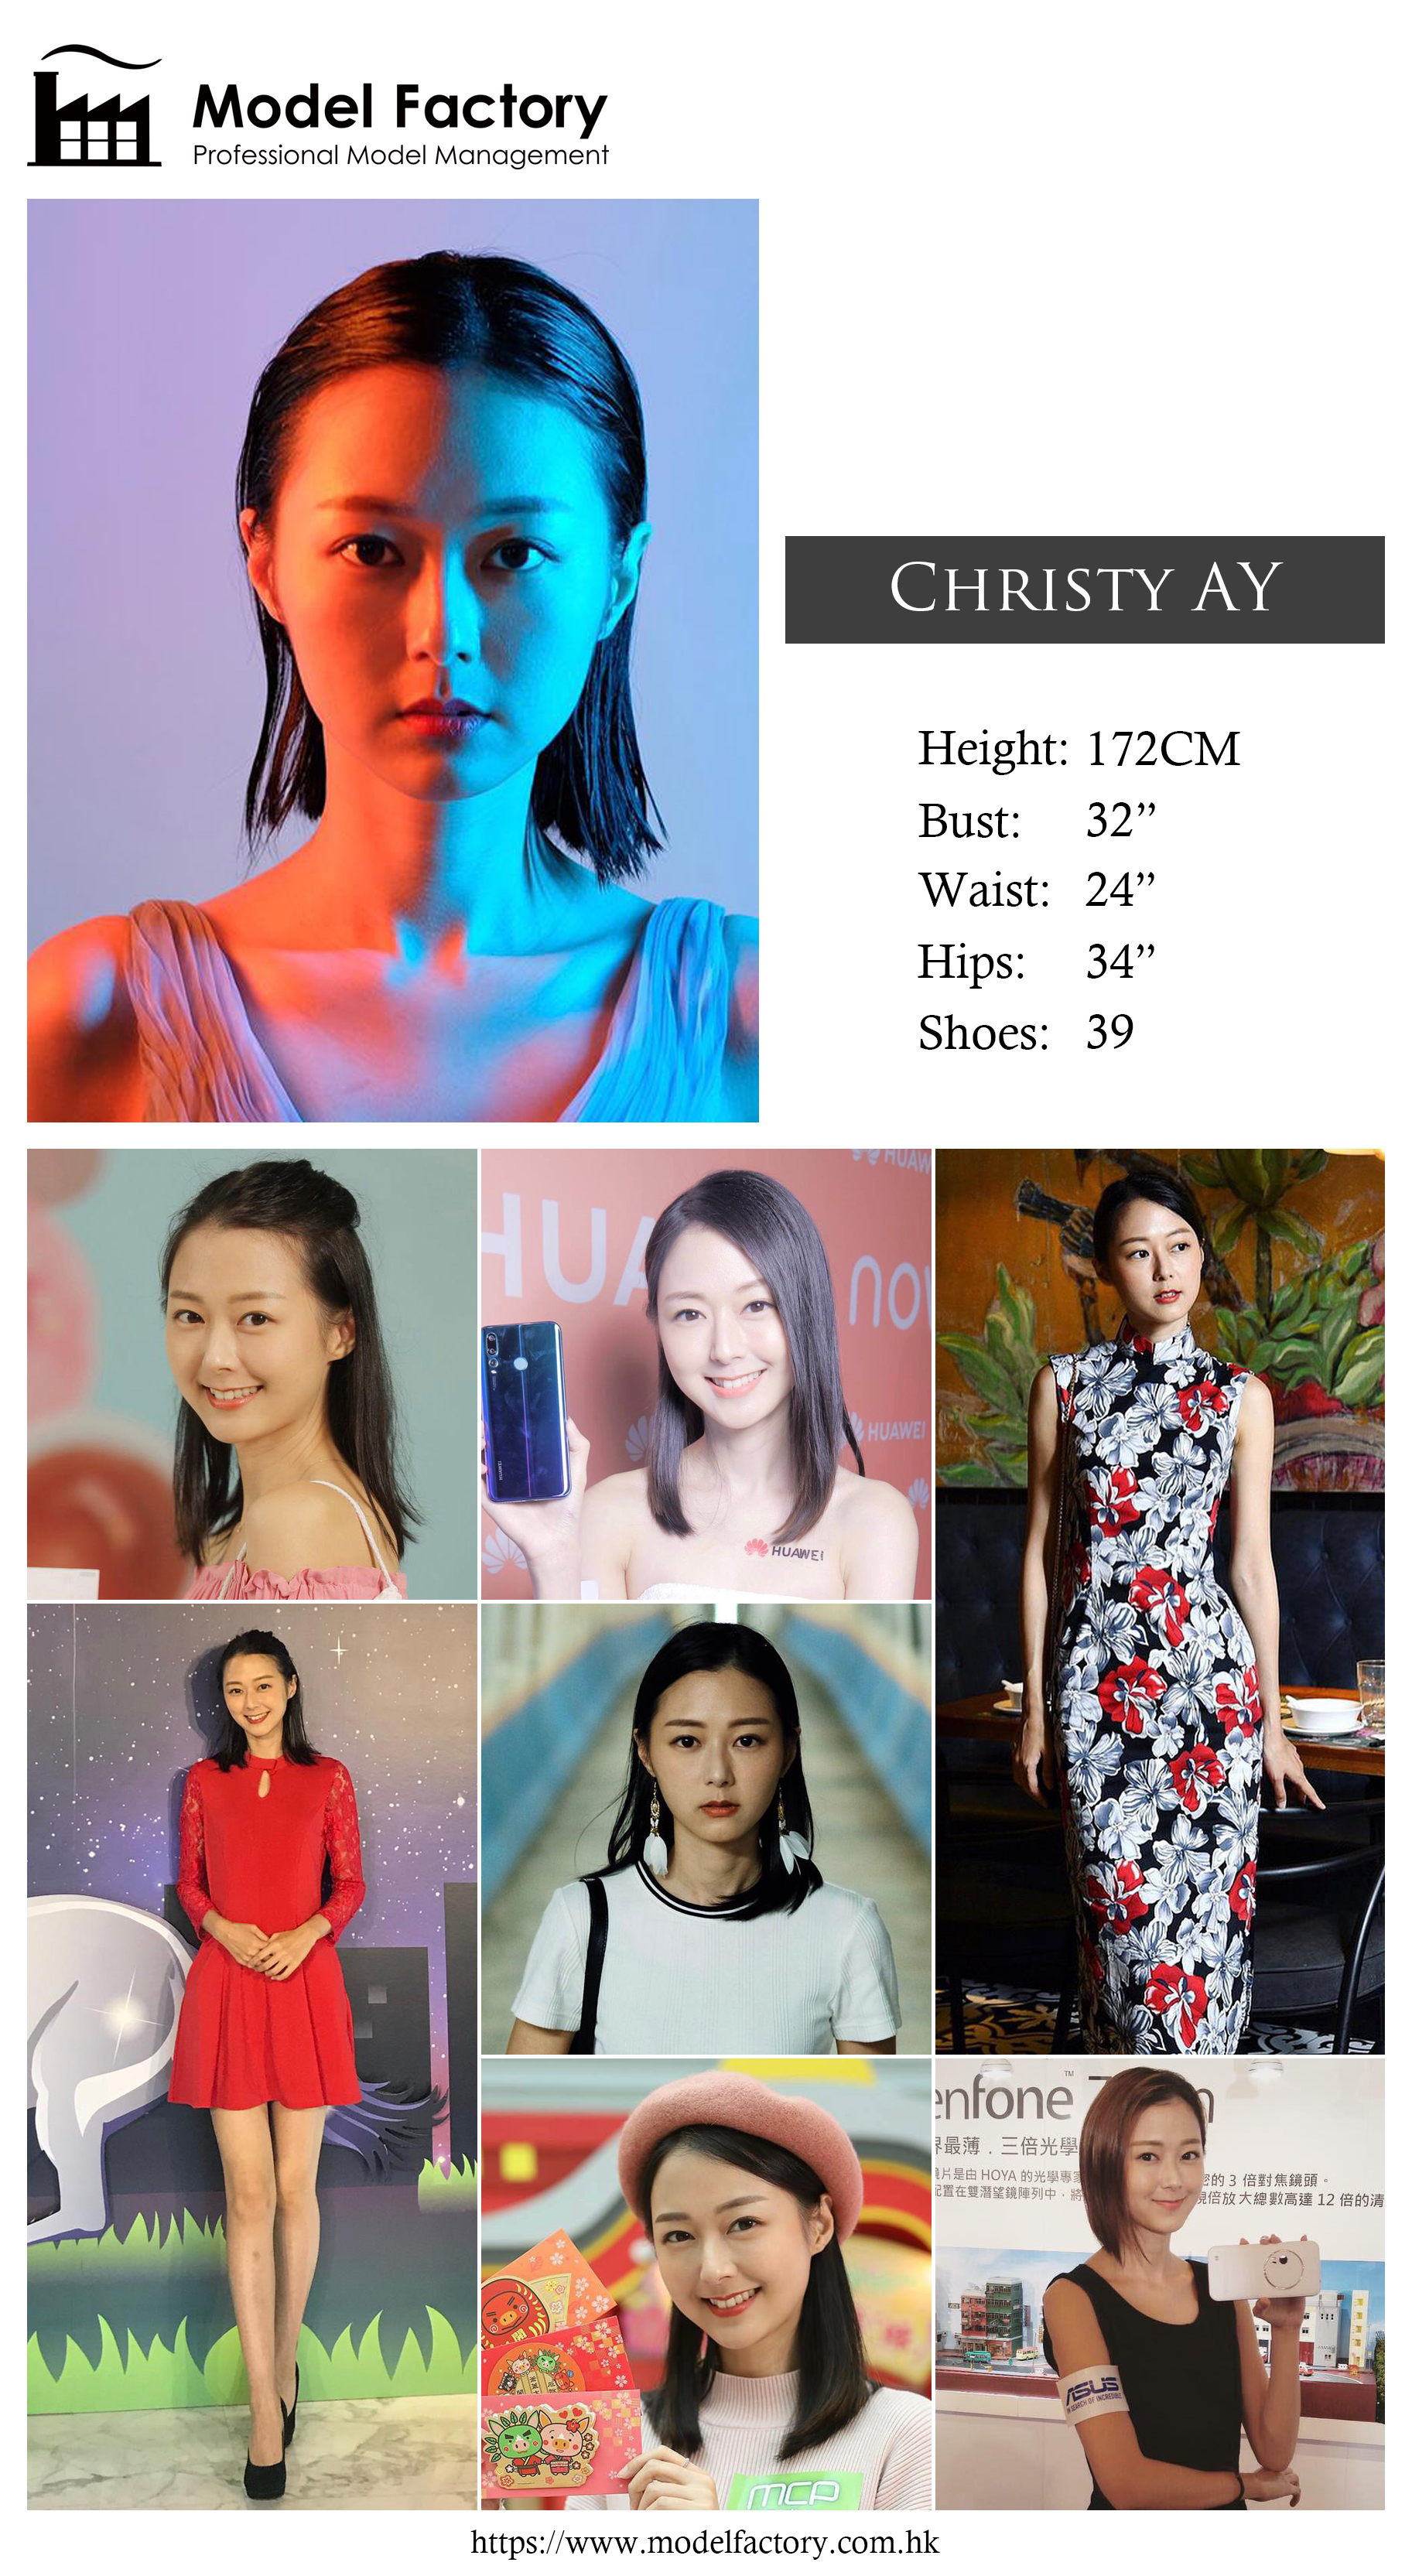 Model Factory Hong Kong Female Model ChristyAY